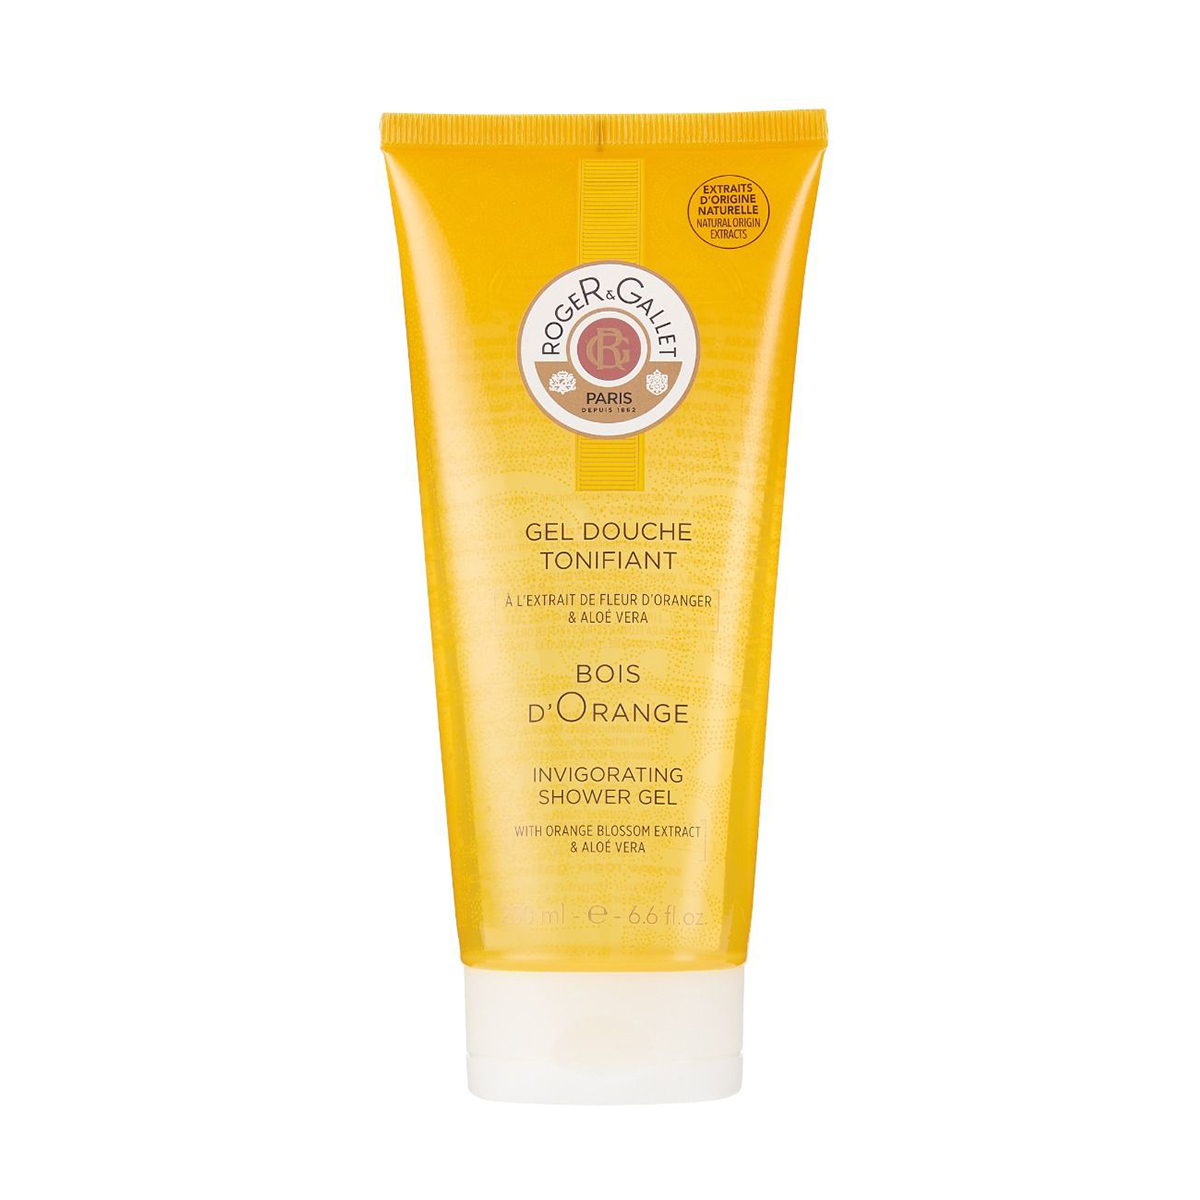 Gel Douche Tonifiant Bois d'Orange Roger Gallet - 200ml